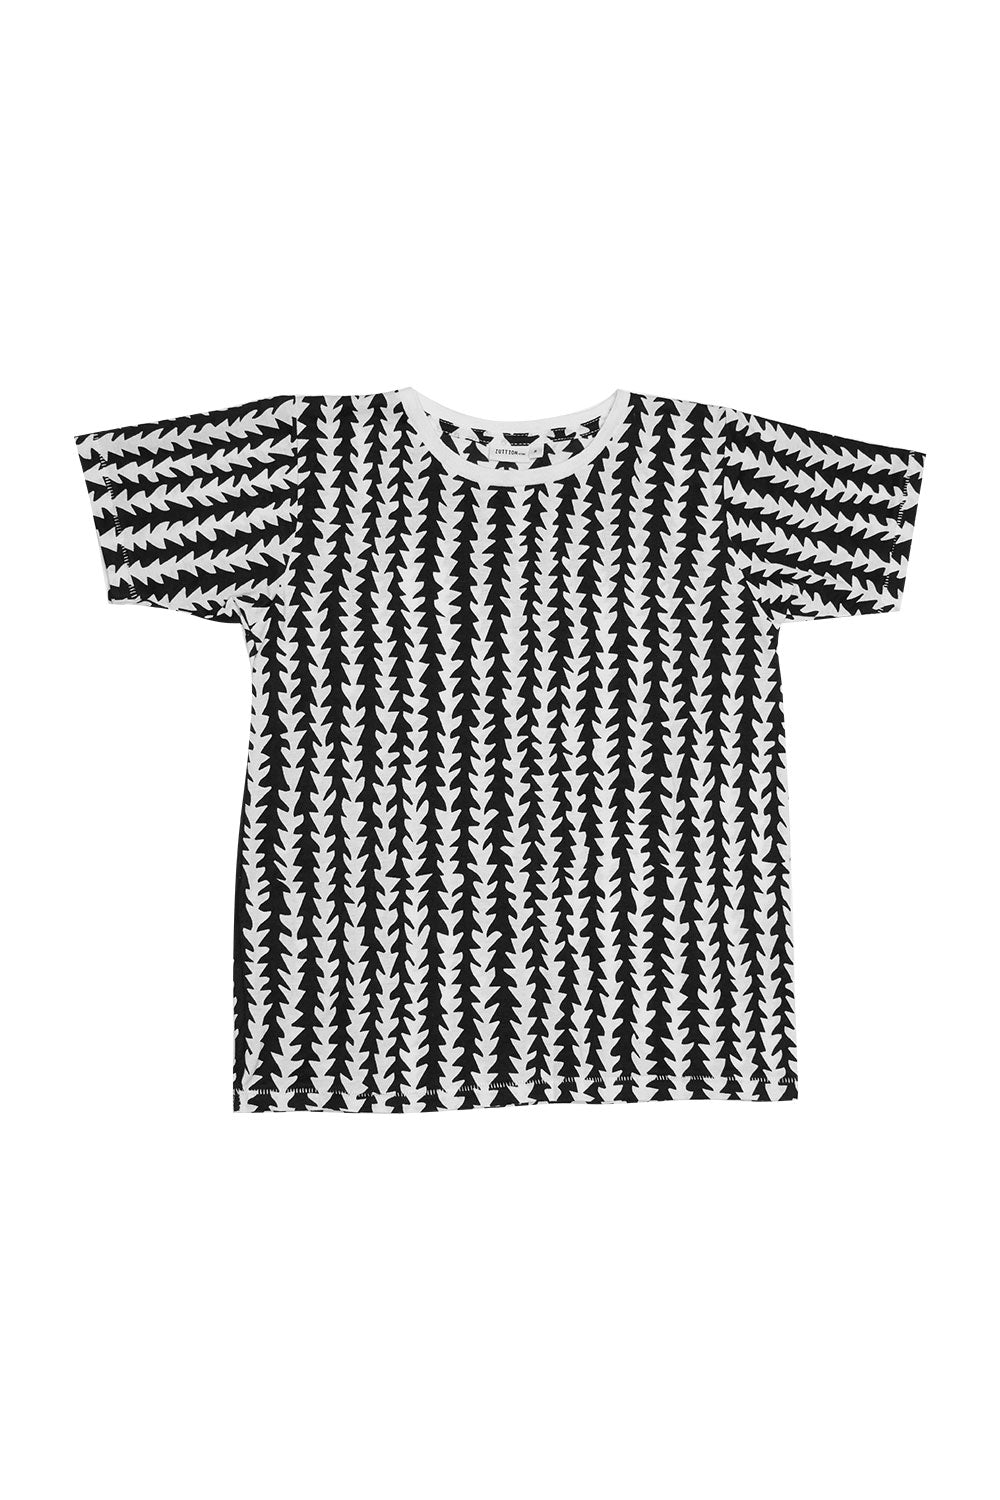 TRIBE S/S ROUND NECK T BLACK/WHITE